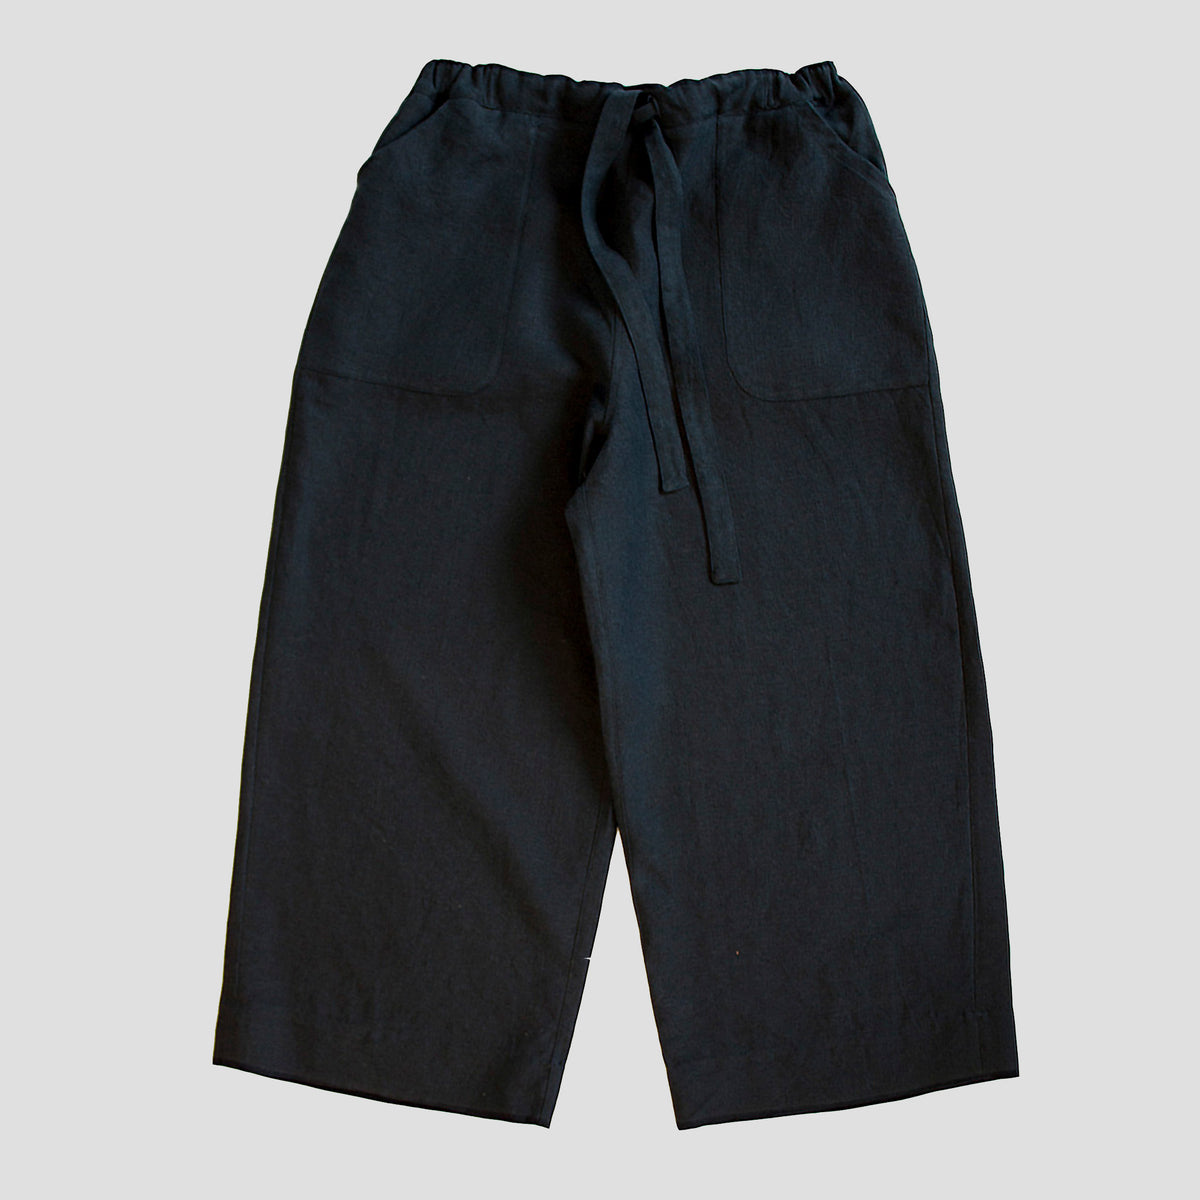 front view of a pair of dark navy heavy linen womenswear trousers with an elasticated waist and deep pockets